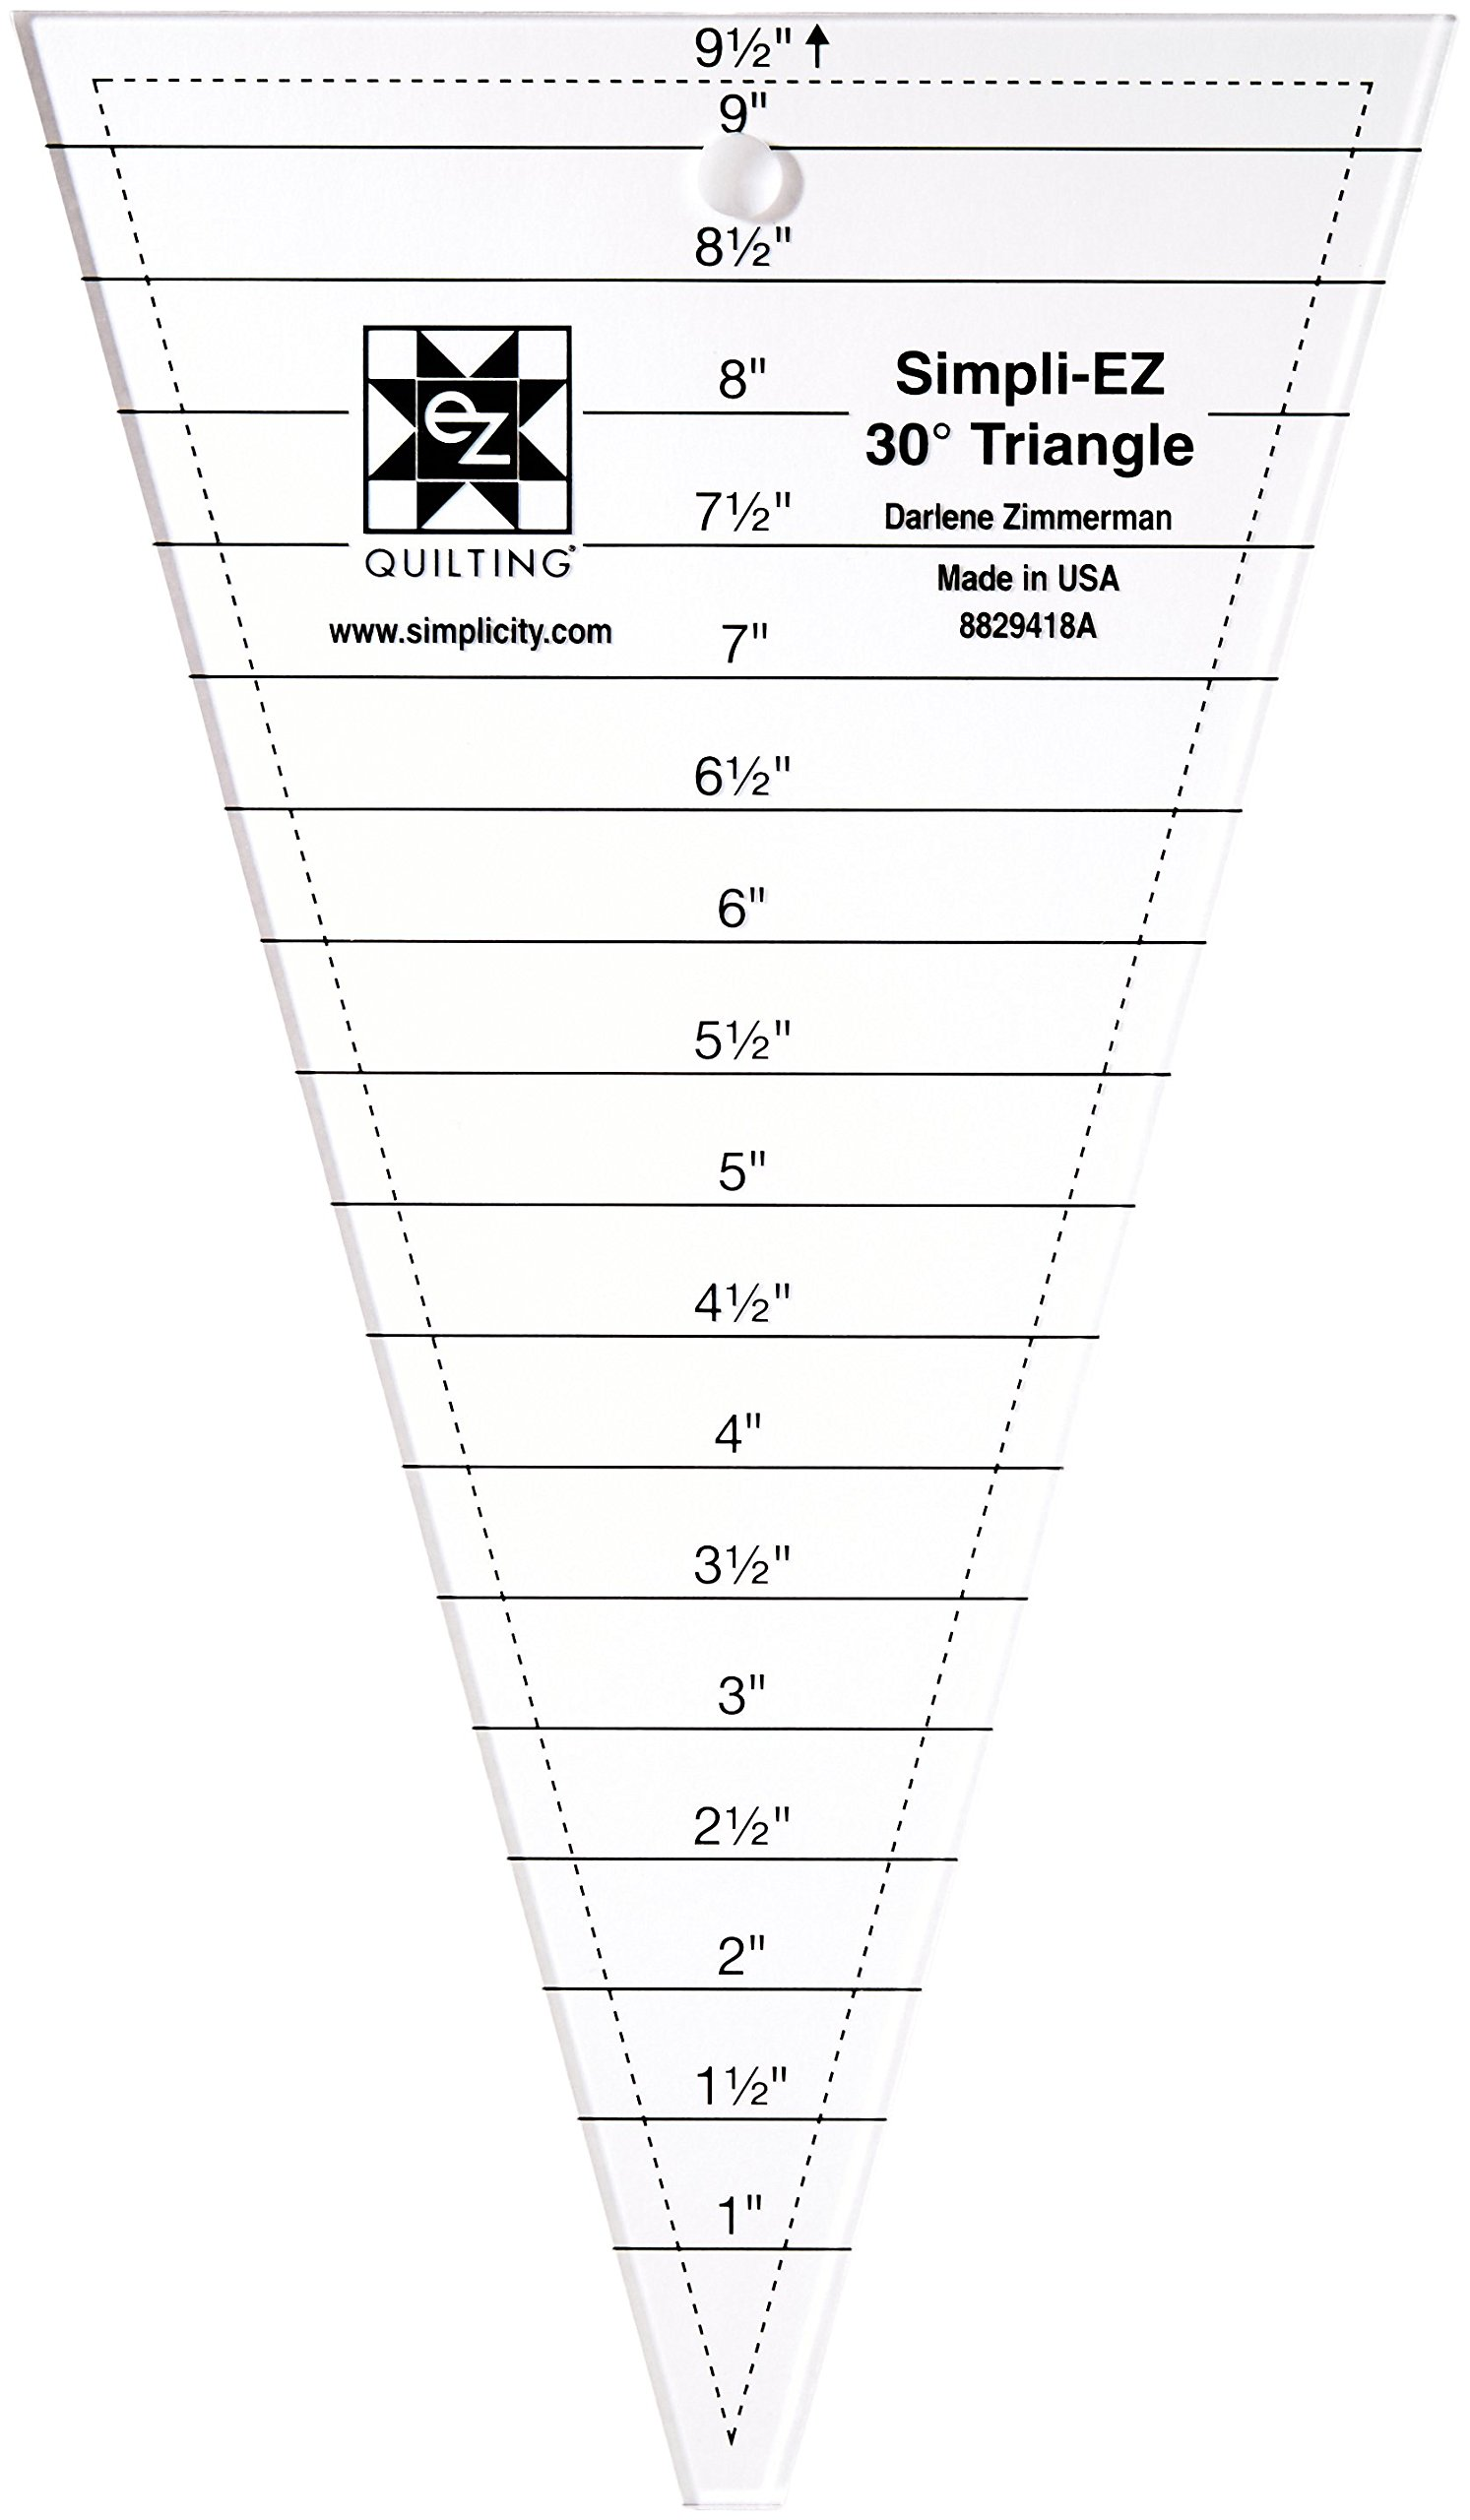 """Simplicity 30 Degree Triangle Quilting Ruler and Quilting Template, 9.5"""" x 5.5"""""""